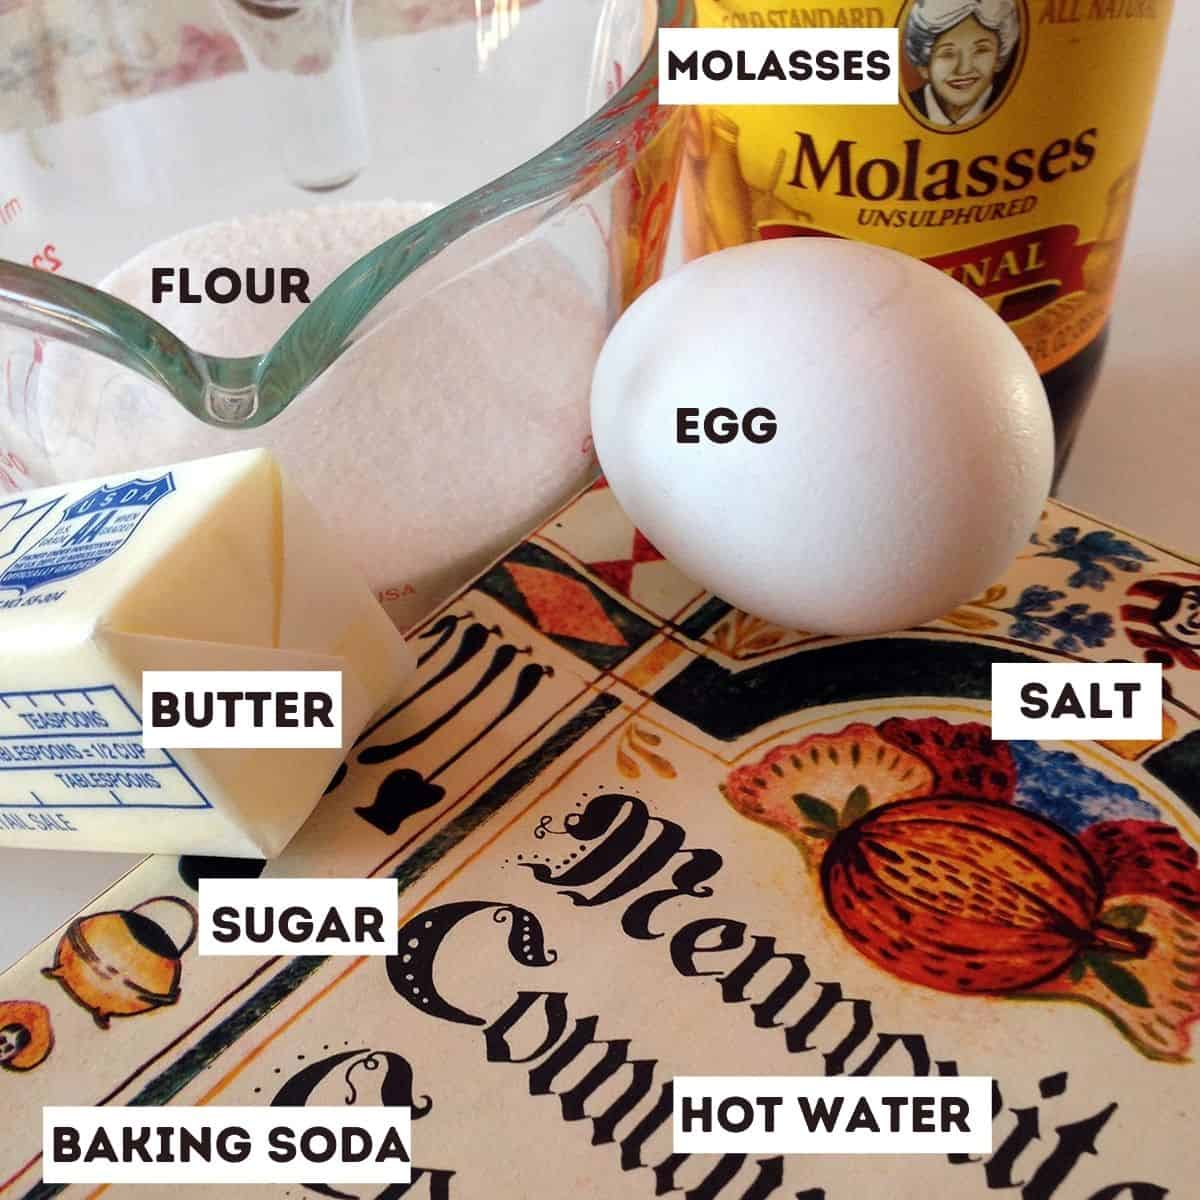 An egg, flour, butter, molasses and other baking ingredients.